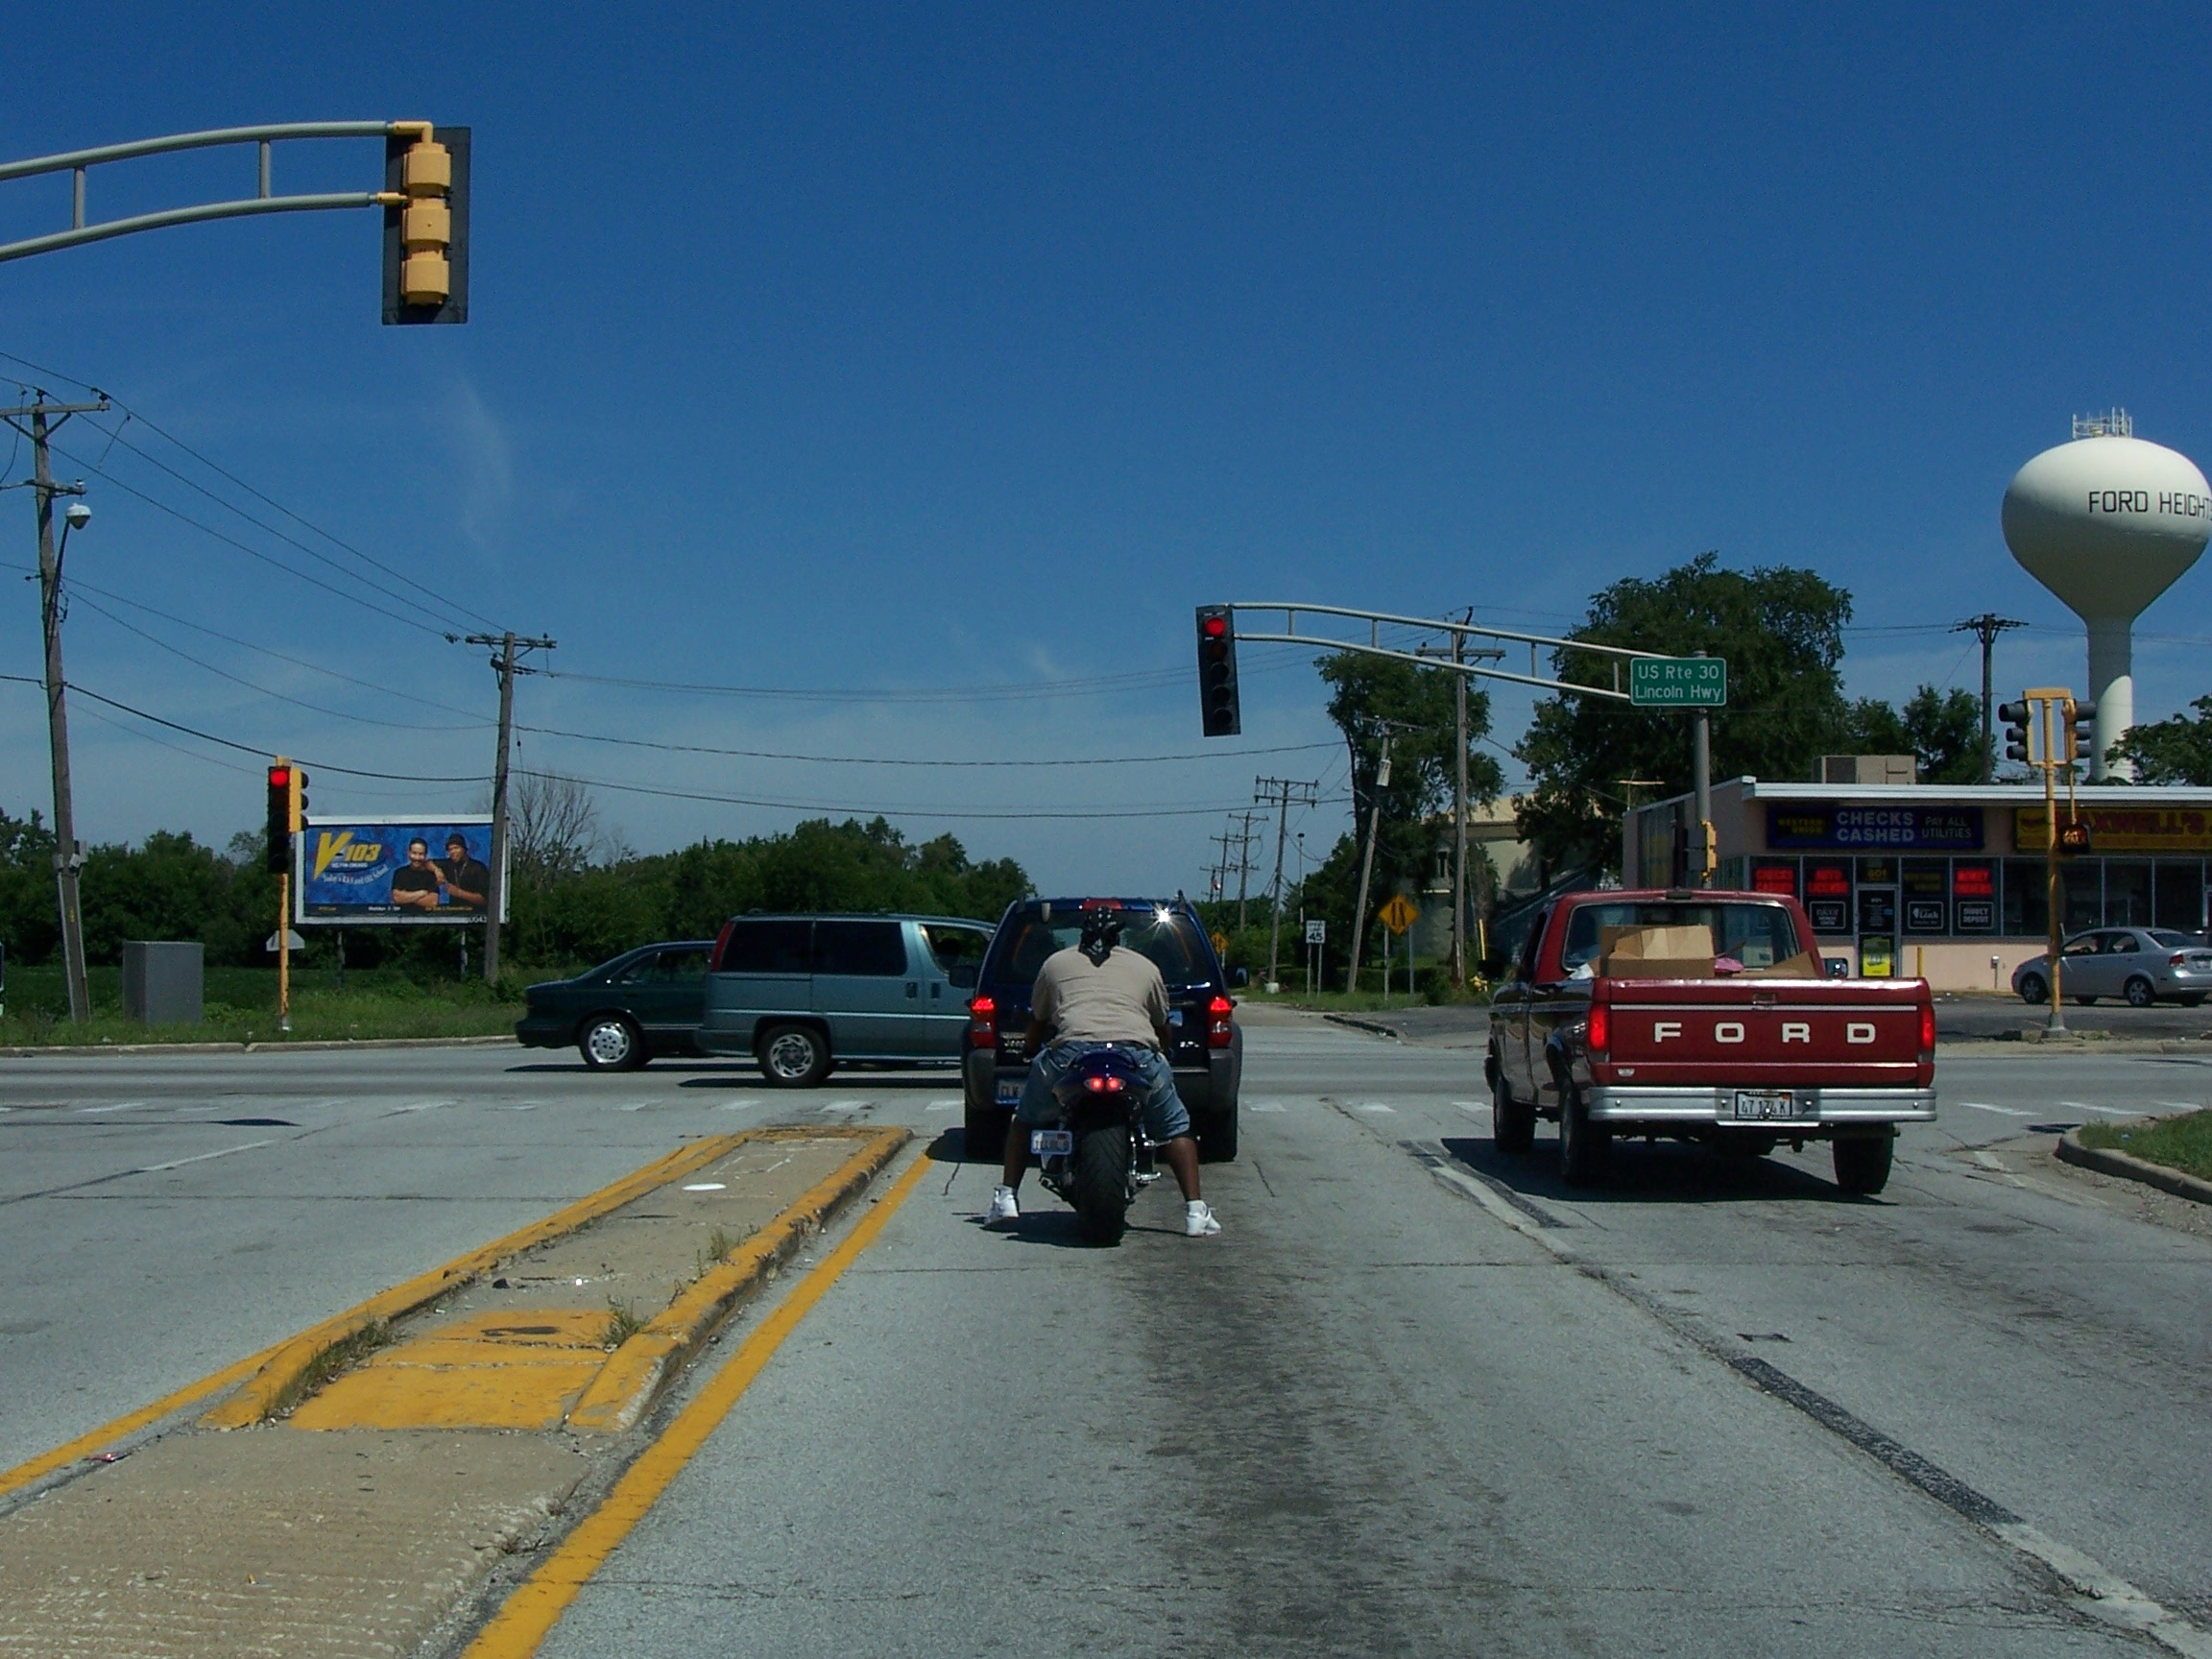 File us 30 in ford heights illinois jpg